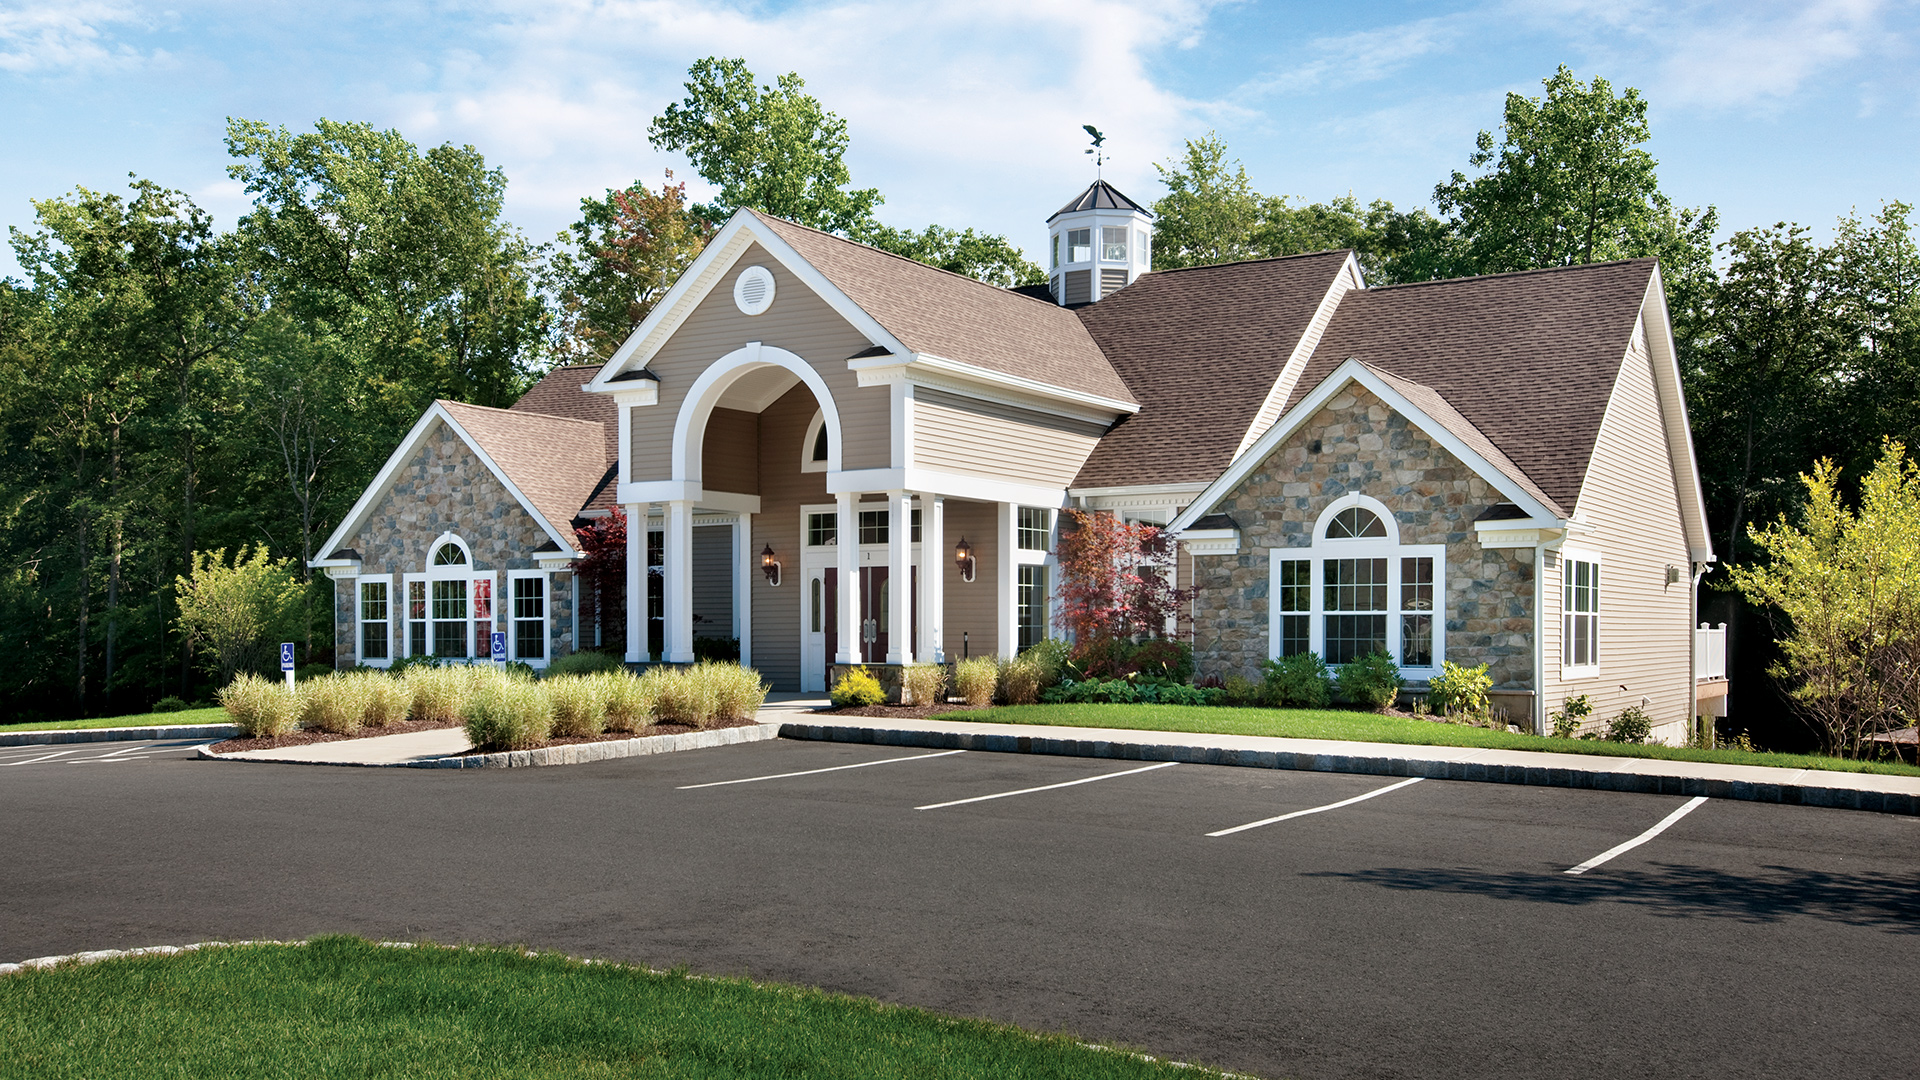 Award-winning, 7,000 sq. ft. clubhouse with fitness room, ballroom, & equipped kitchen